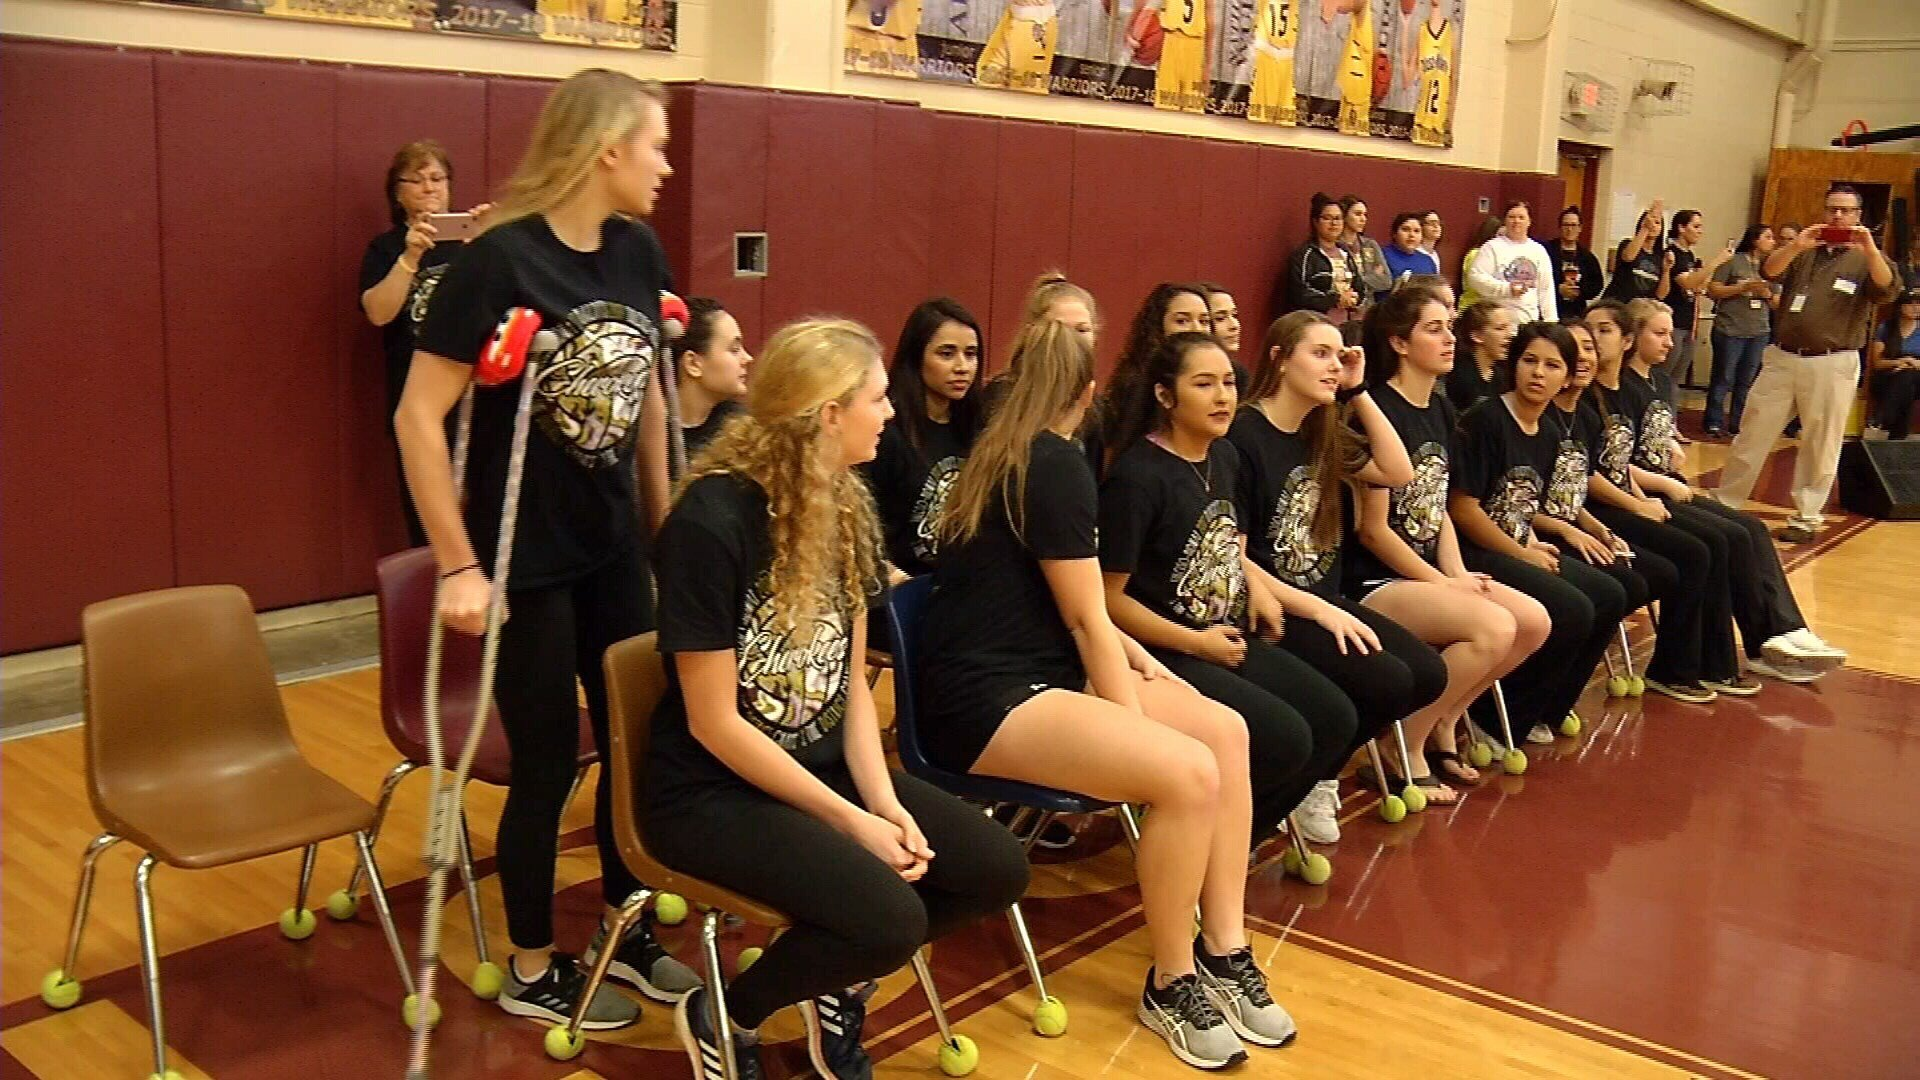 Tuloso-Midway High School held a pep rally for the school's volleyball team.